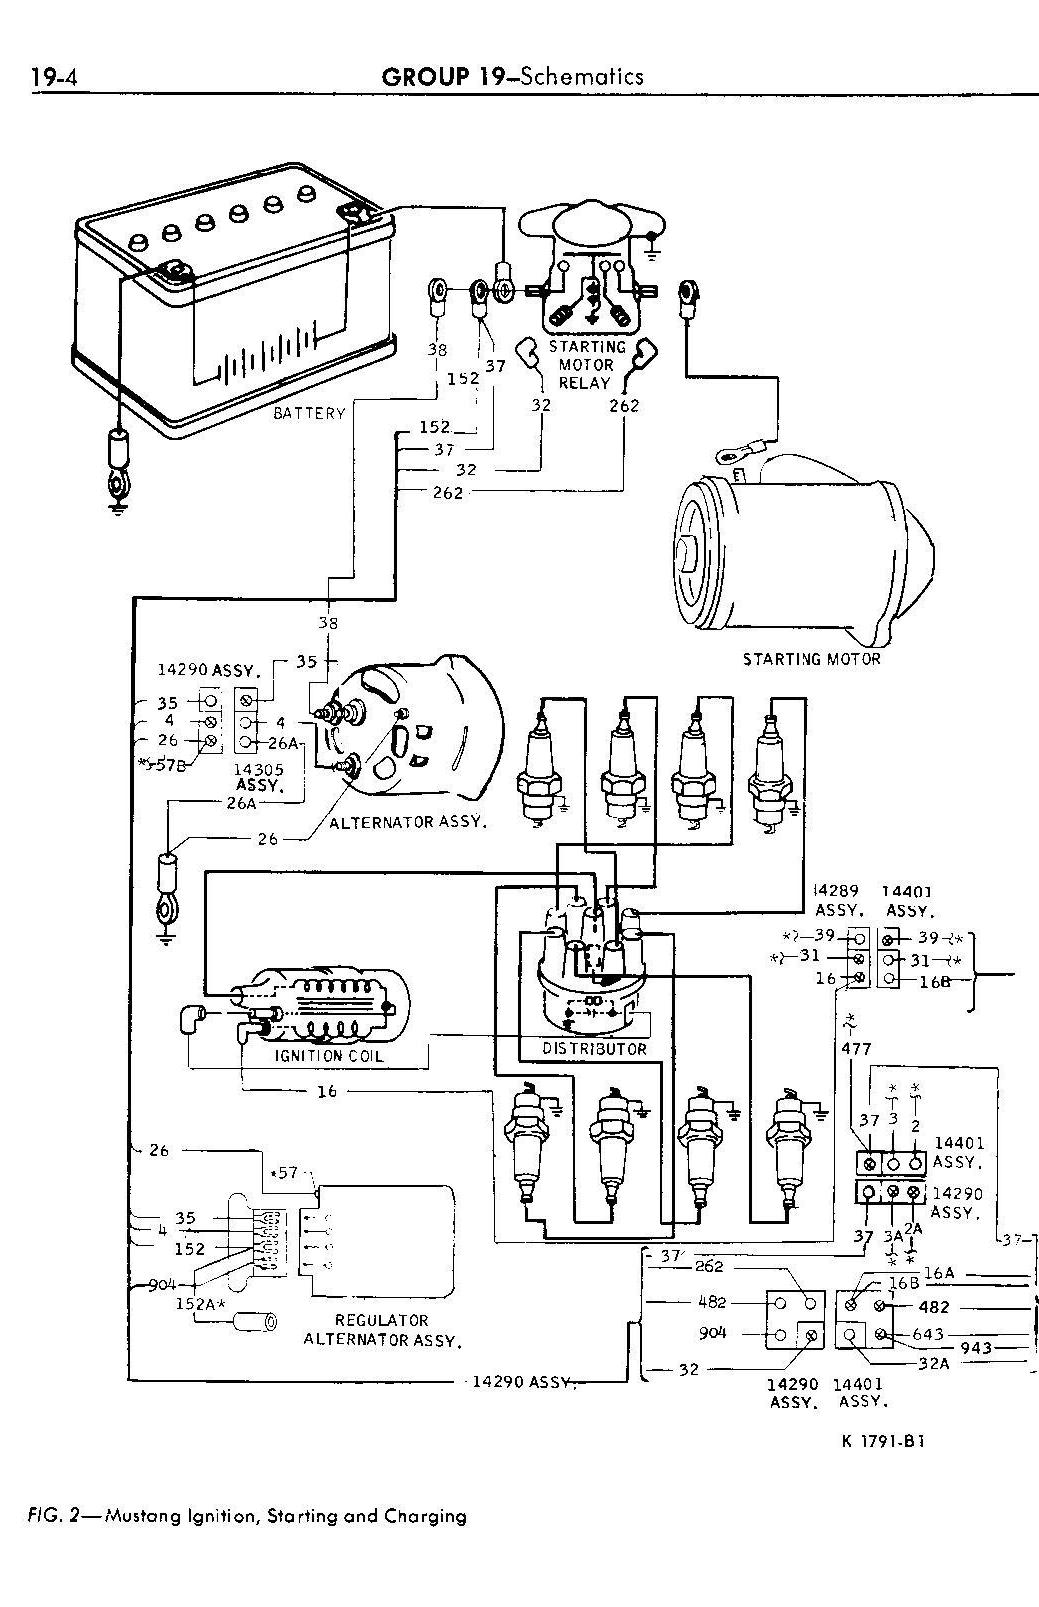 1965 Falcon Wiring Diagram Simple Guide About Ford Xp C4 Transmission 30 Images Alternator